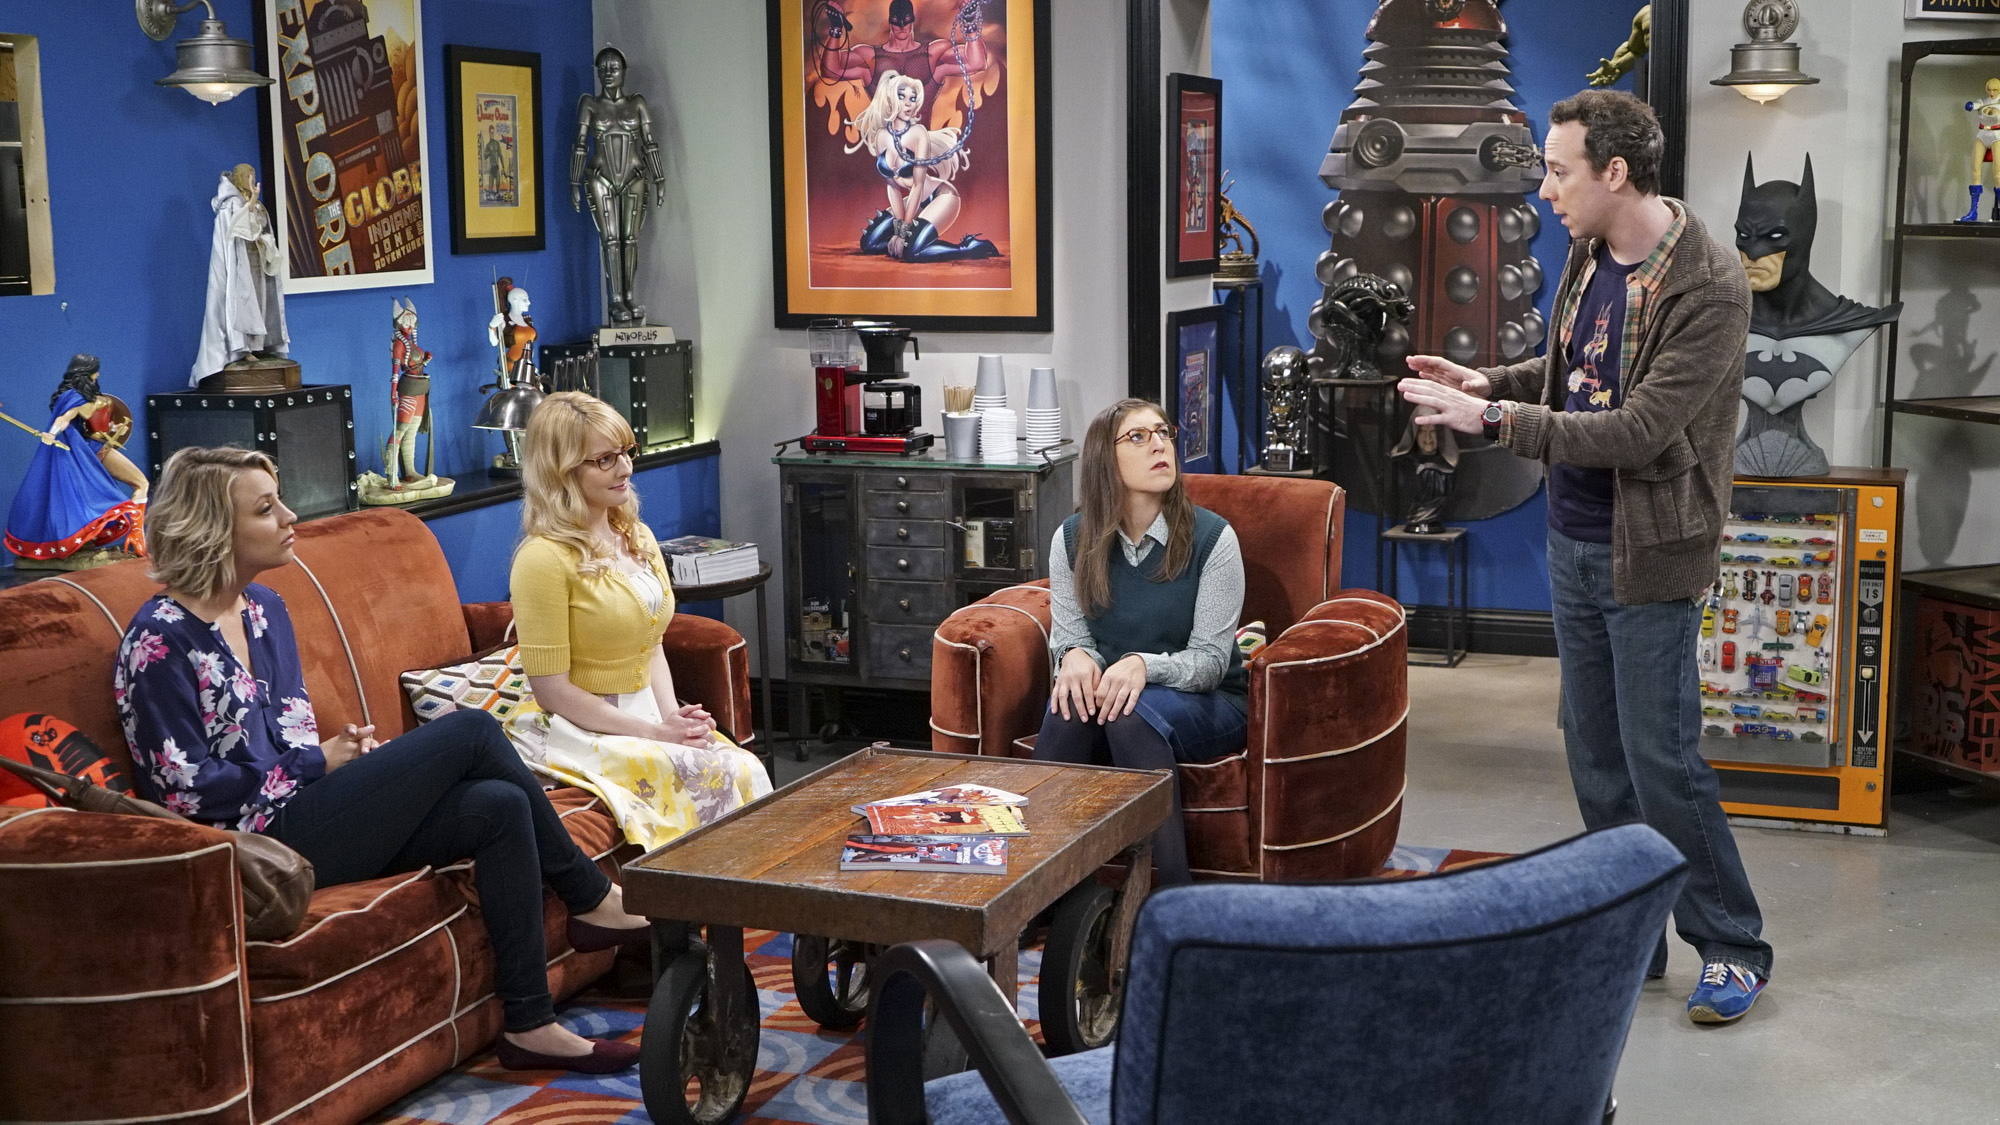 Penny, Bernadette, and Amy offer some pearls of wisdom to Stuart